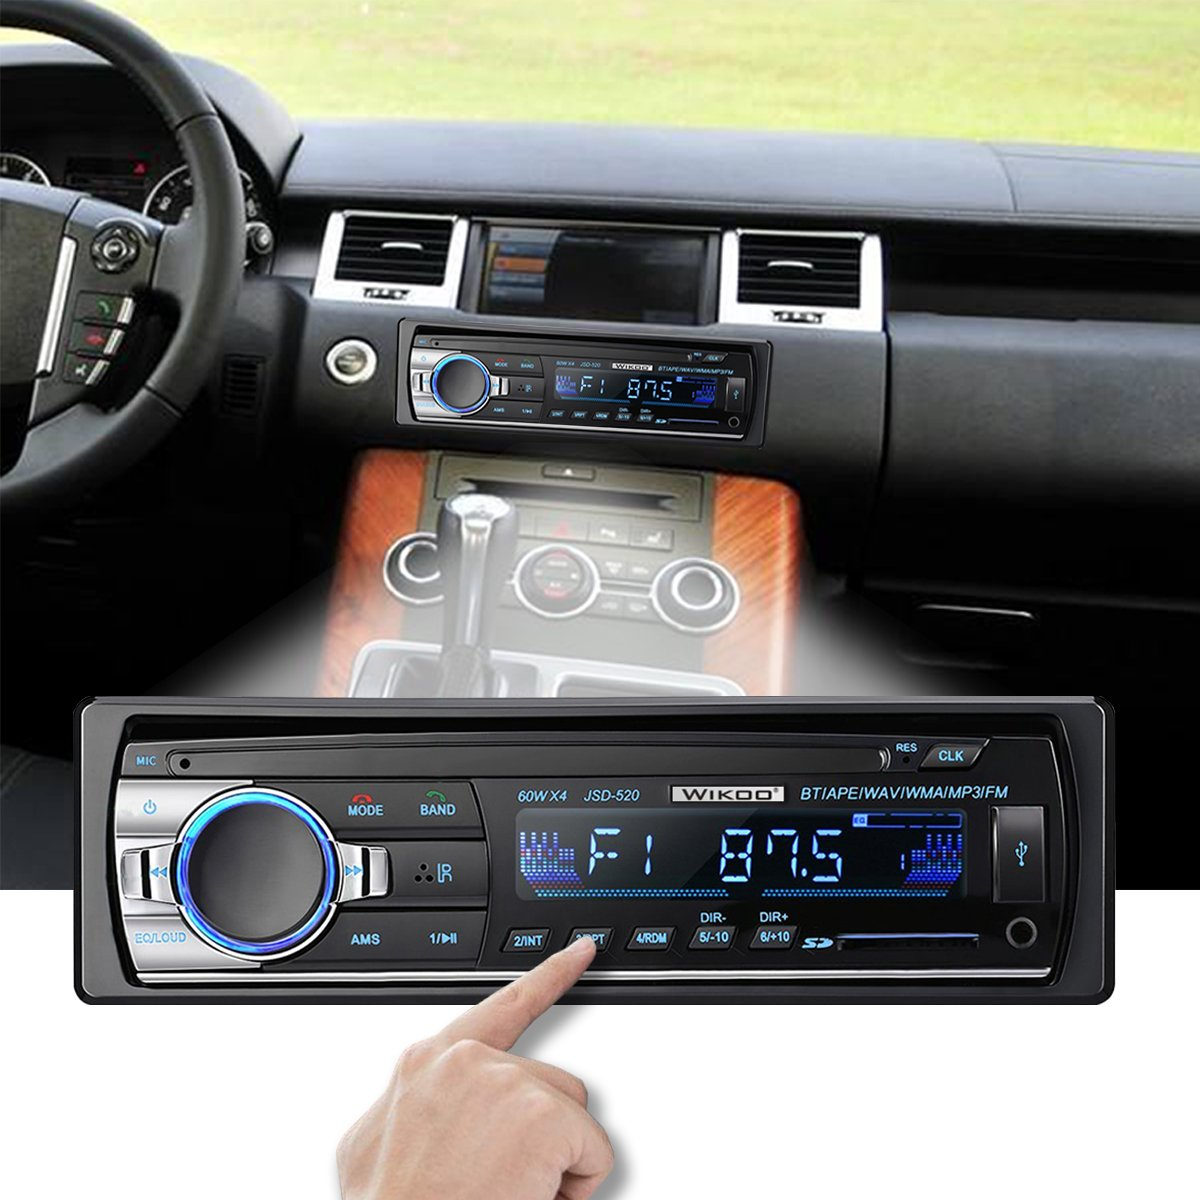 Digital Car Stereo - Wikoo Single-Din Bluetooth Car Stereo In Dash with Remote Control - Receivers USB/SD/Audio - MP3 Player/FM Radio, Supports Hands Free Calling by Wikoo (Image #6)